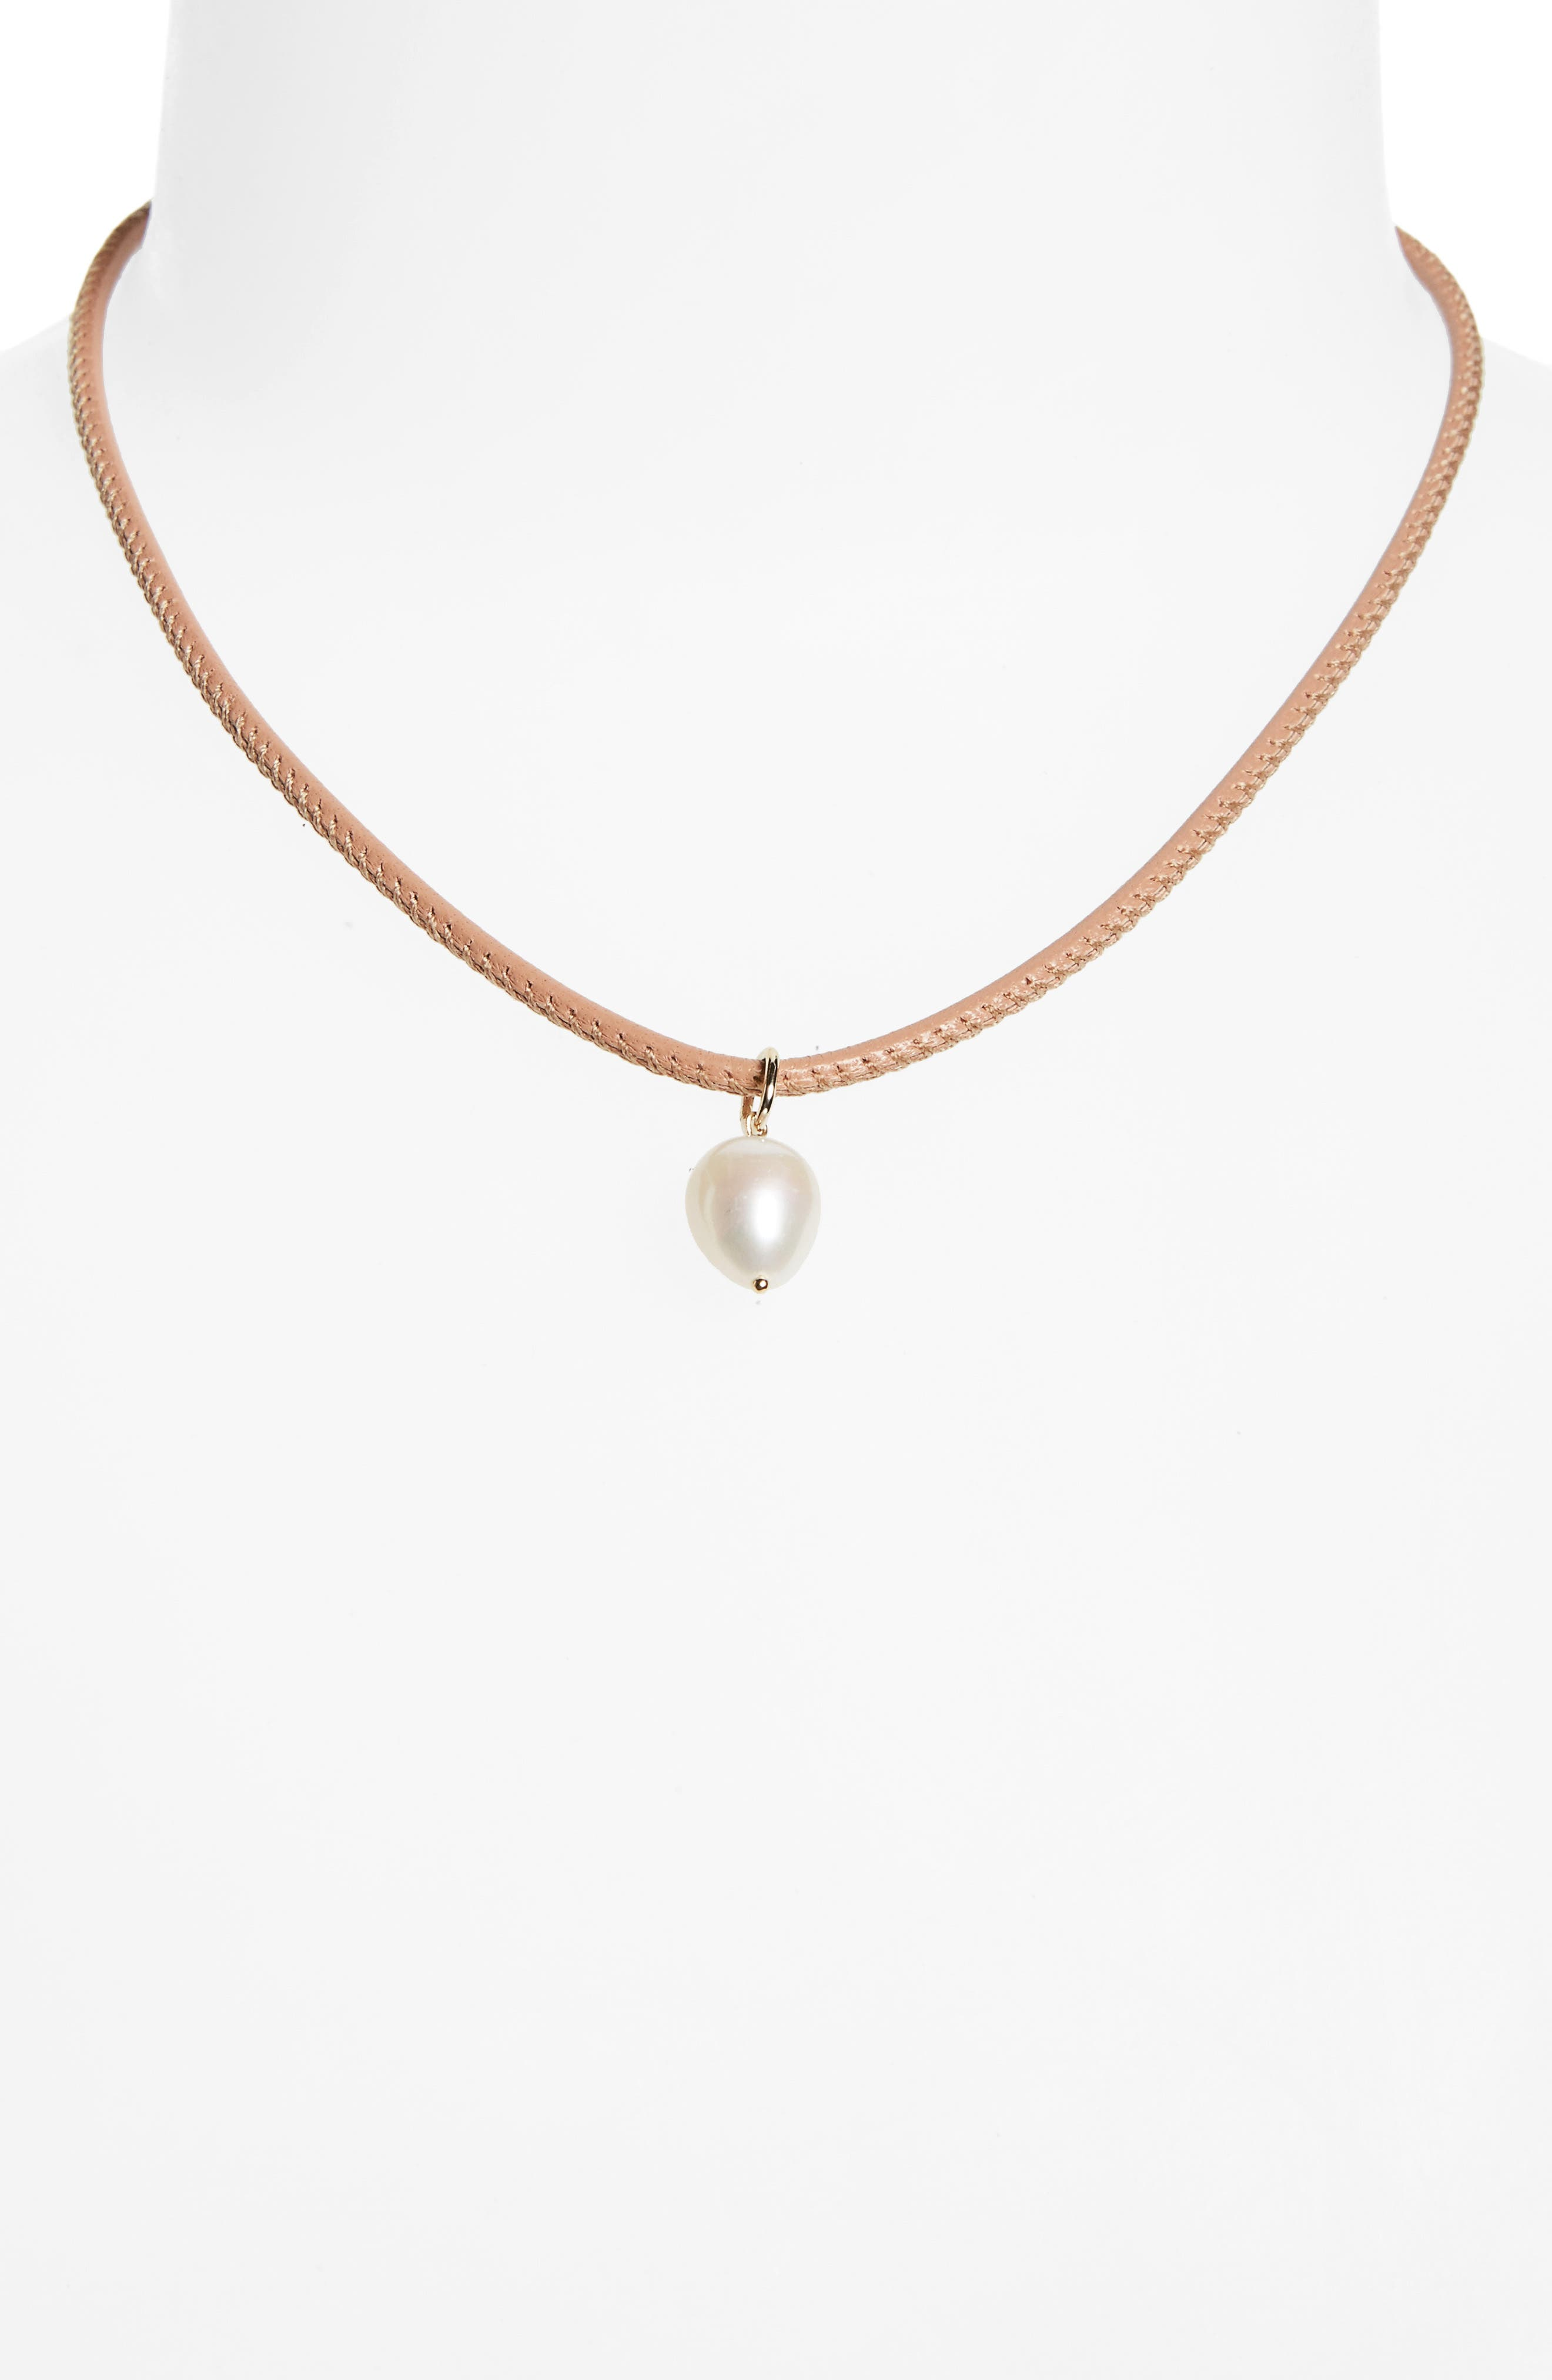 Leather & Pearl Choker,                             Main thumbnail 1, color,                             NEUTRAL LEATHER/ WHITE PEARL